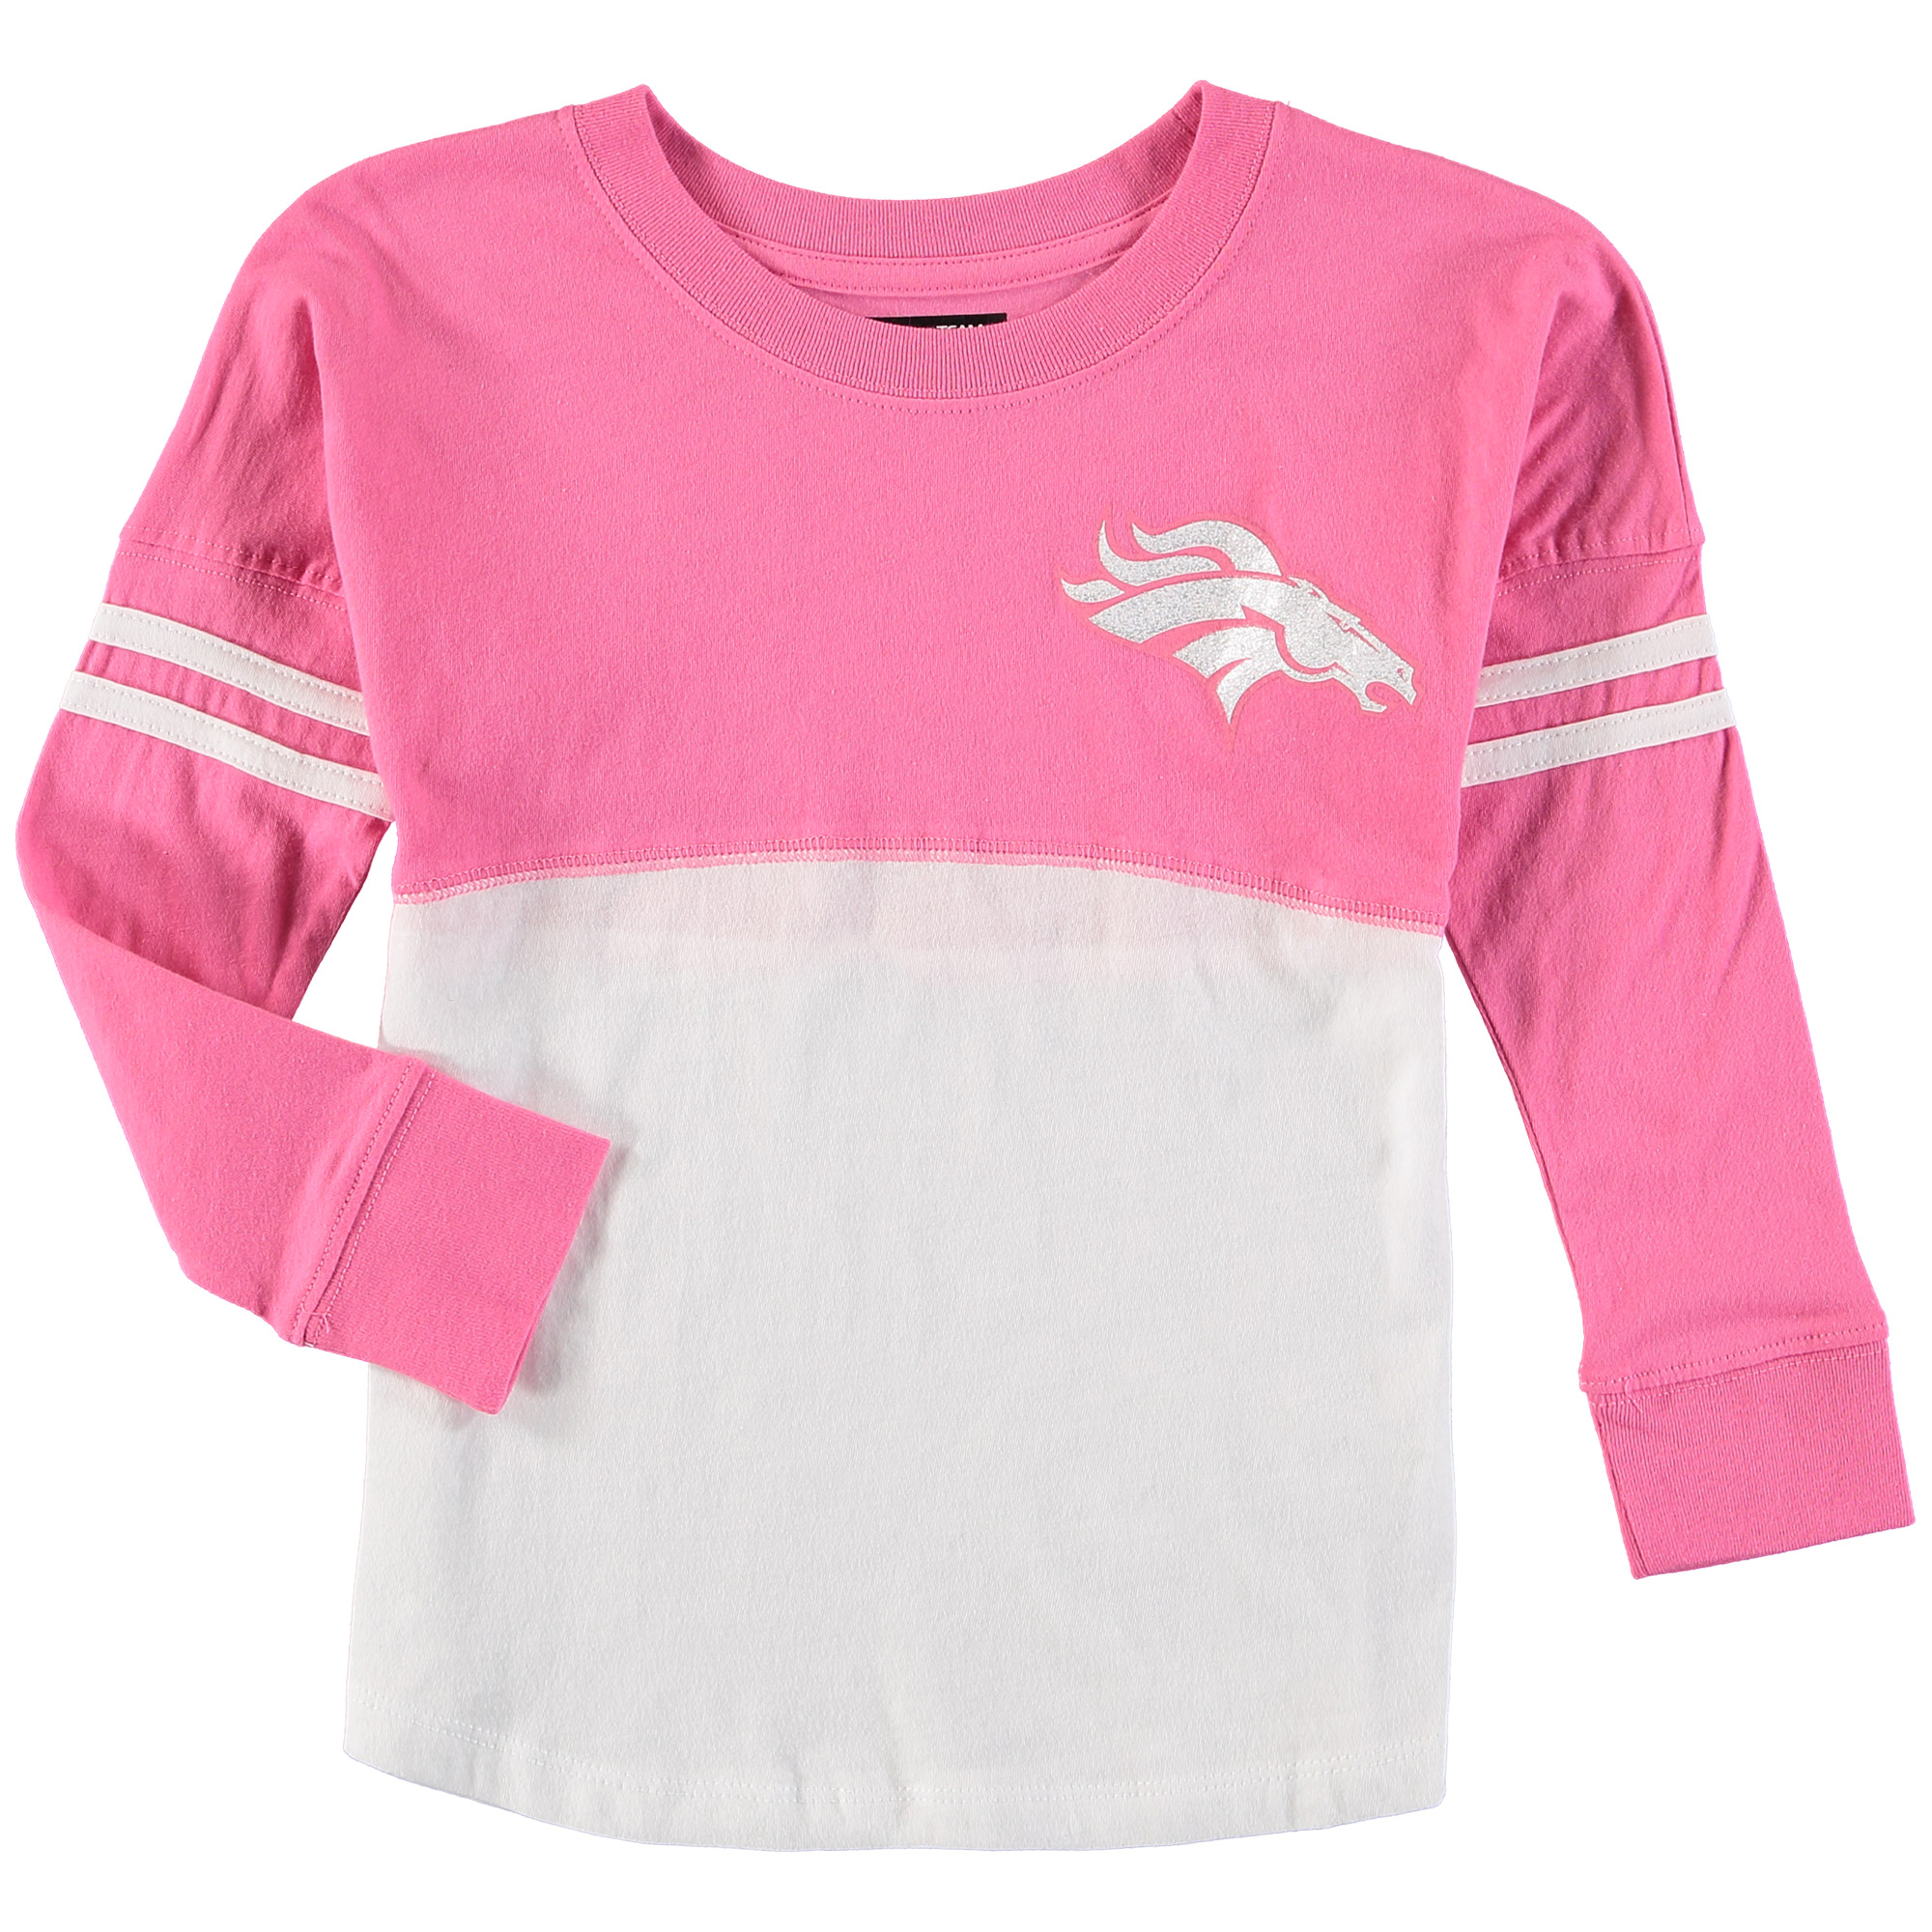 Denver Broncos 5th & Ocean by New Era Girls Youth Varsity Crew Long Sleeve T-Shirt - White/Pink